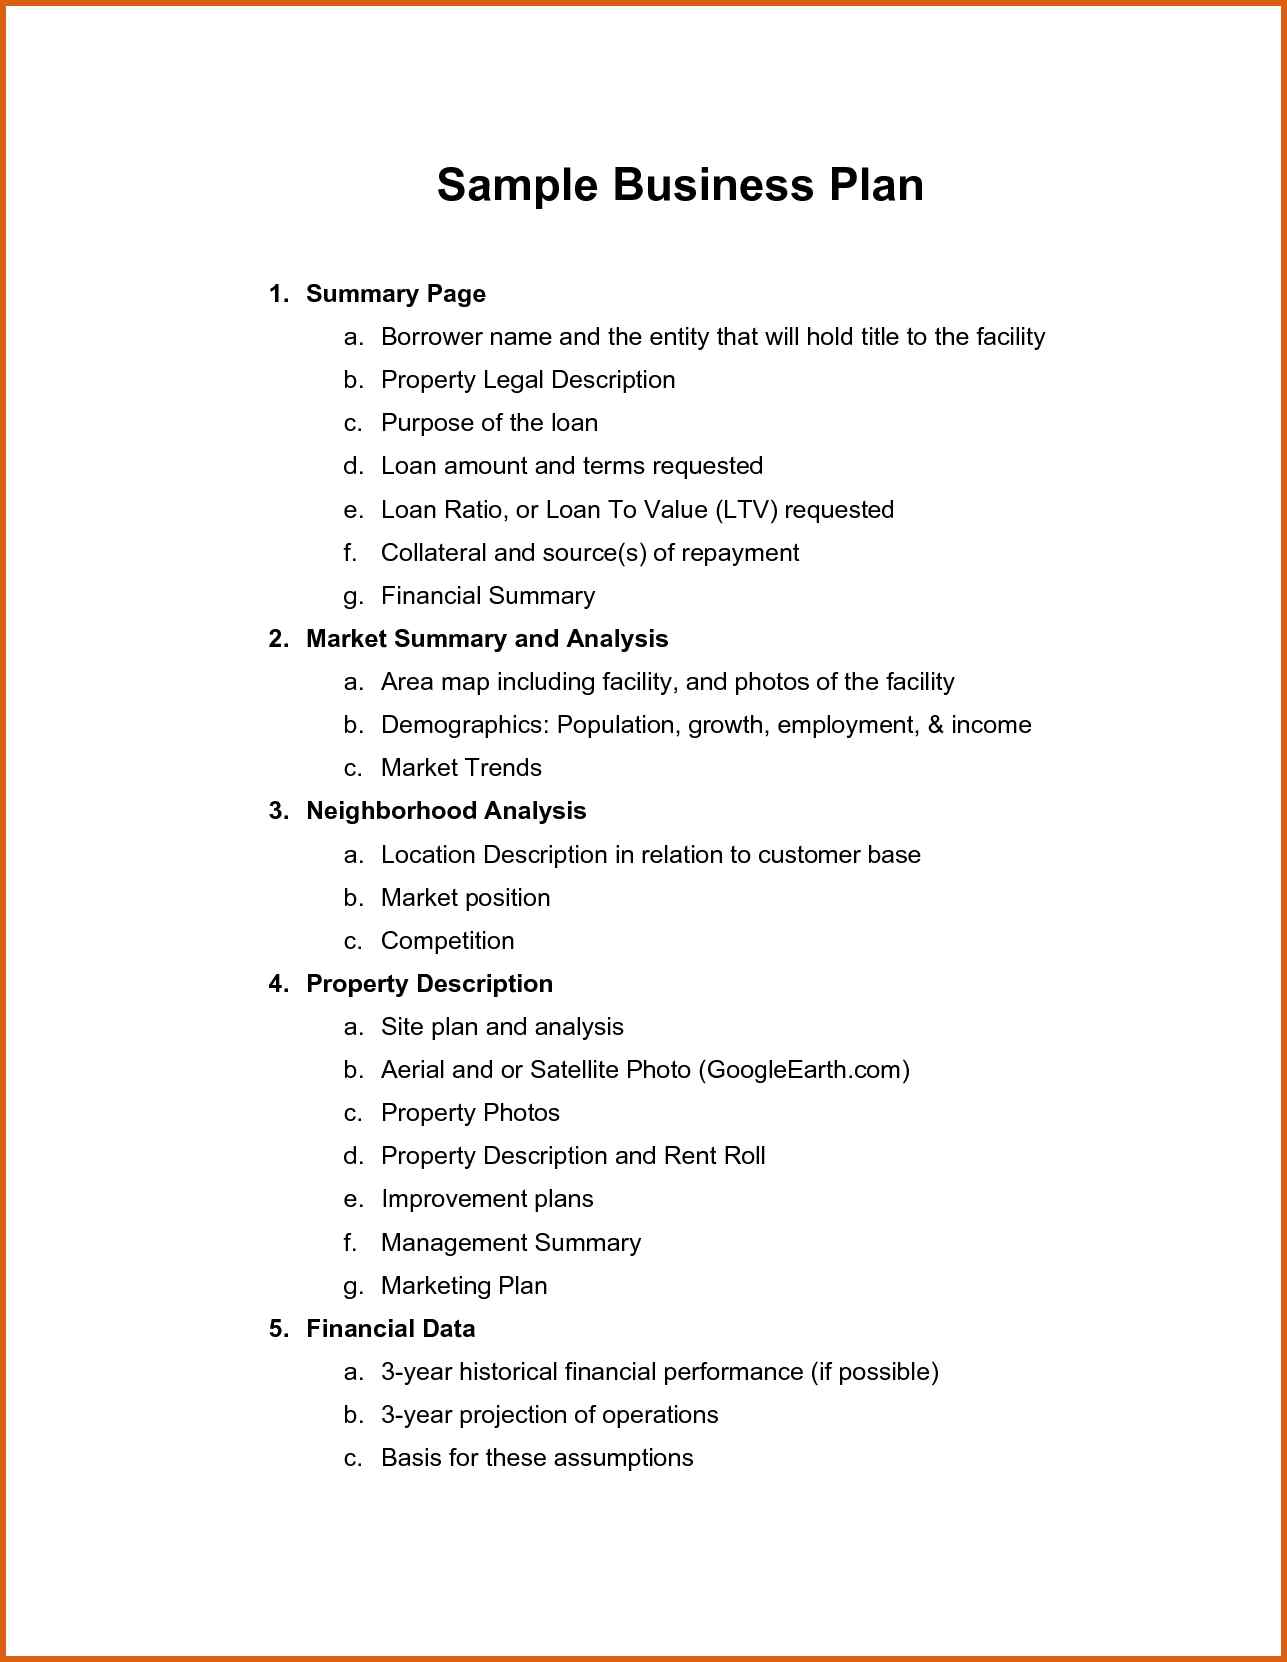 Strategic Business Plan Template | blank forms